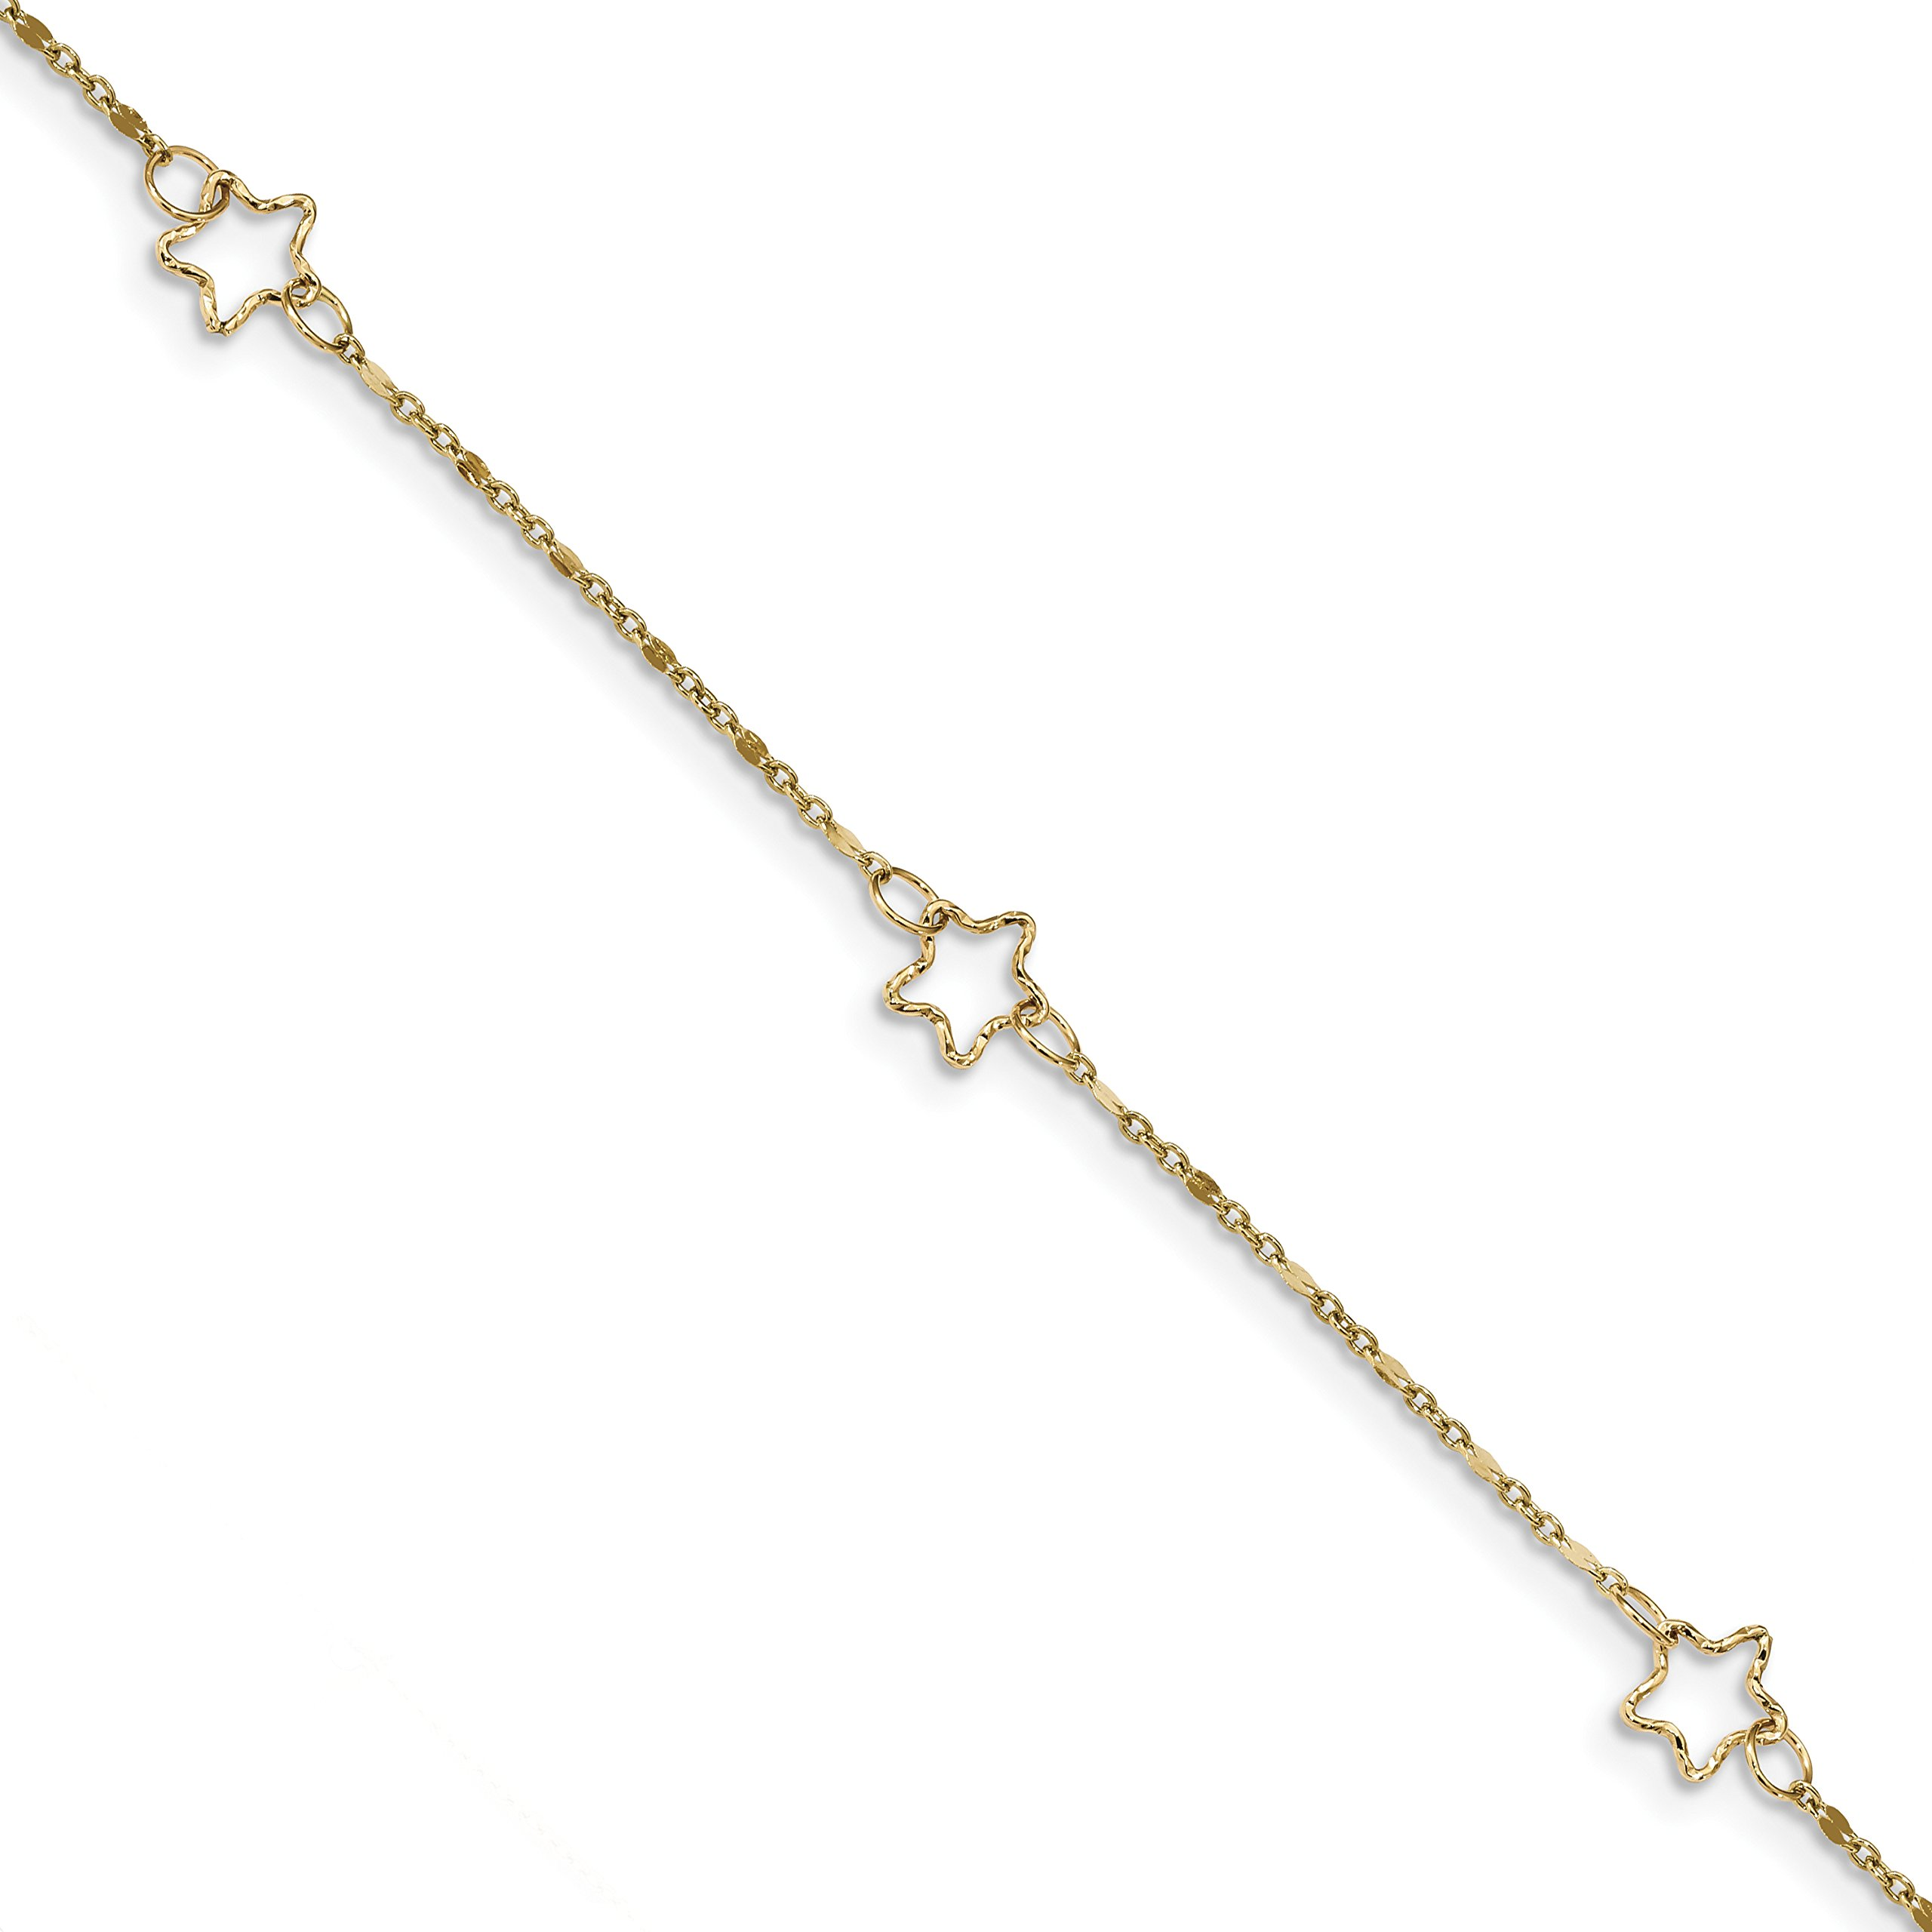 ICE CARATS 14k Yellow Gold Star Anklet Ankle Beach Chain Bracelet Celestial Fine Jewelry Gift Set For Women Heart